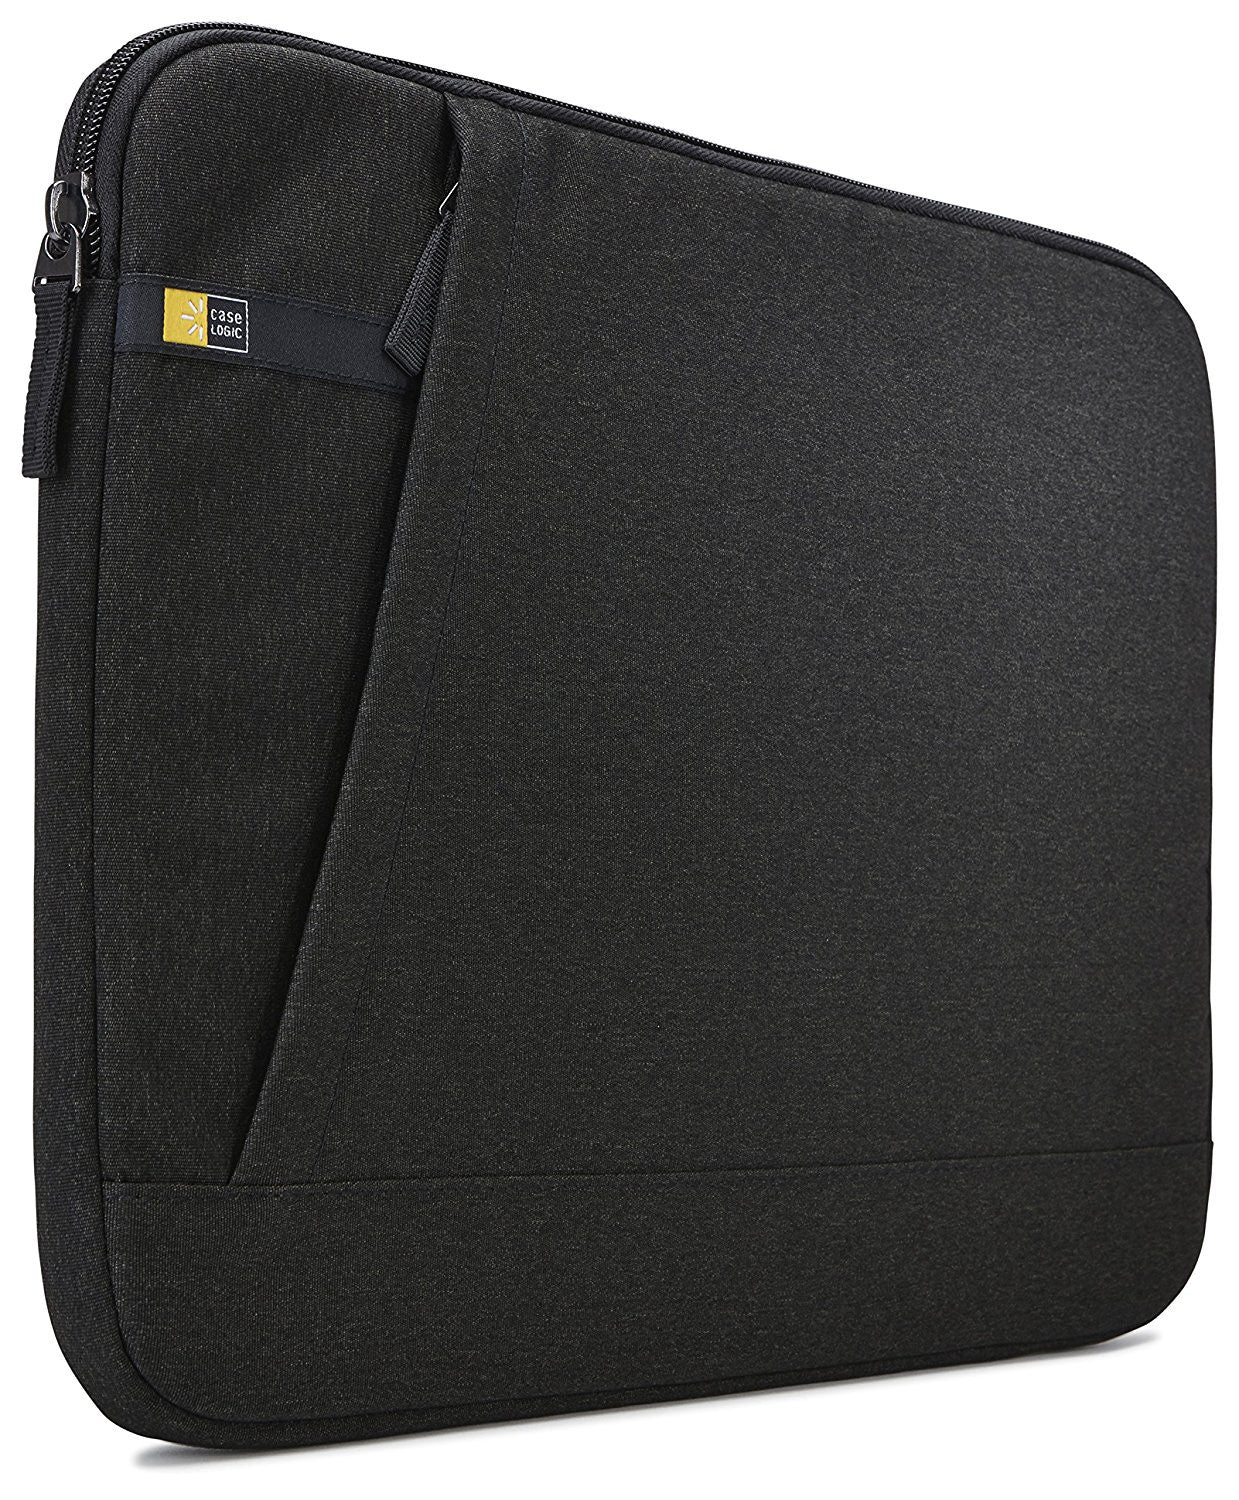 "Case Logic Huxton 15.6"" Laptop Sleeve - HUXS 115 BLACK"